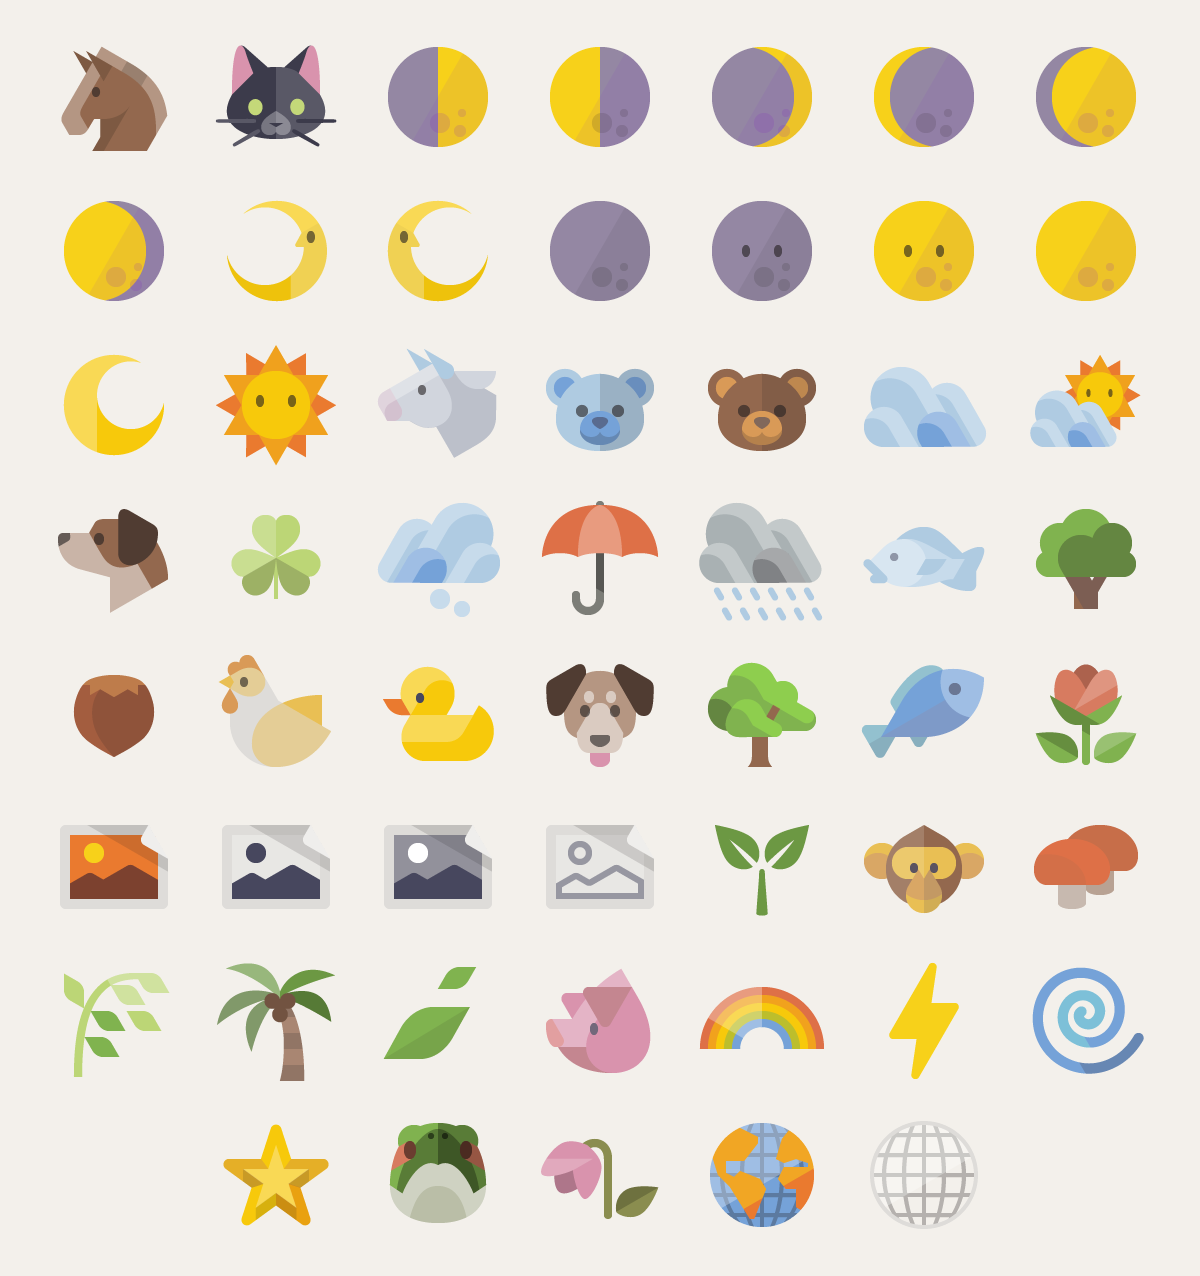 Flat Emoji List Vector Pack - Design Shock